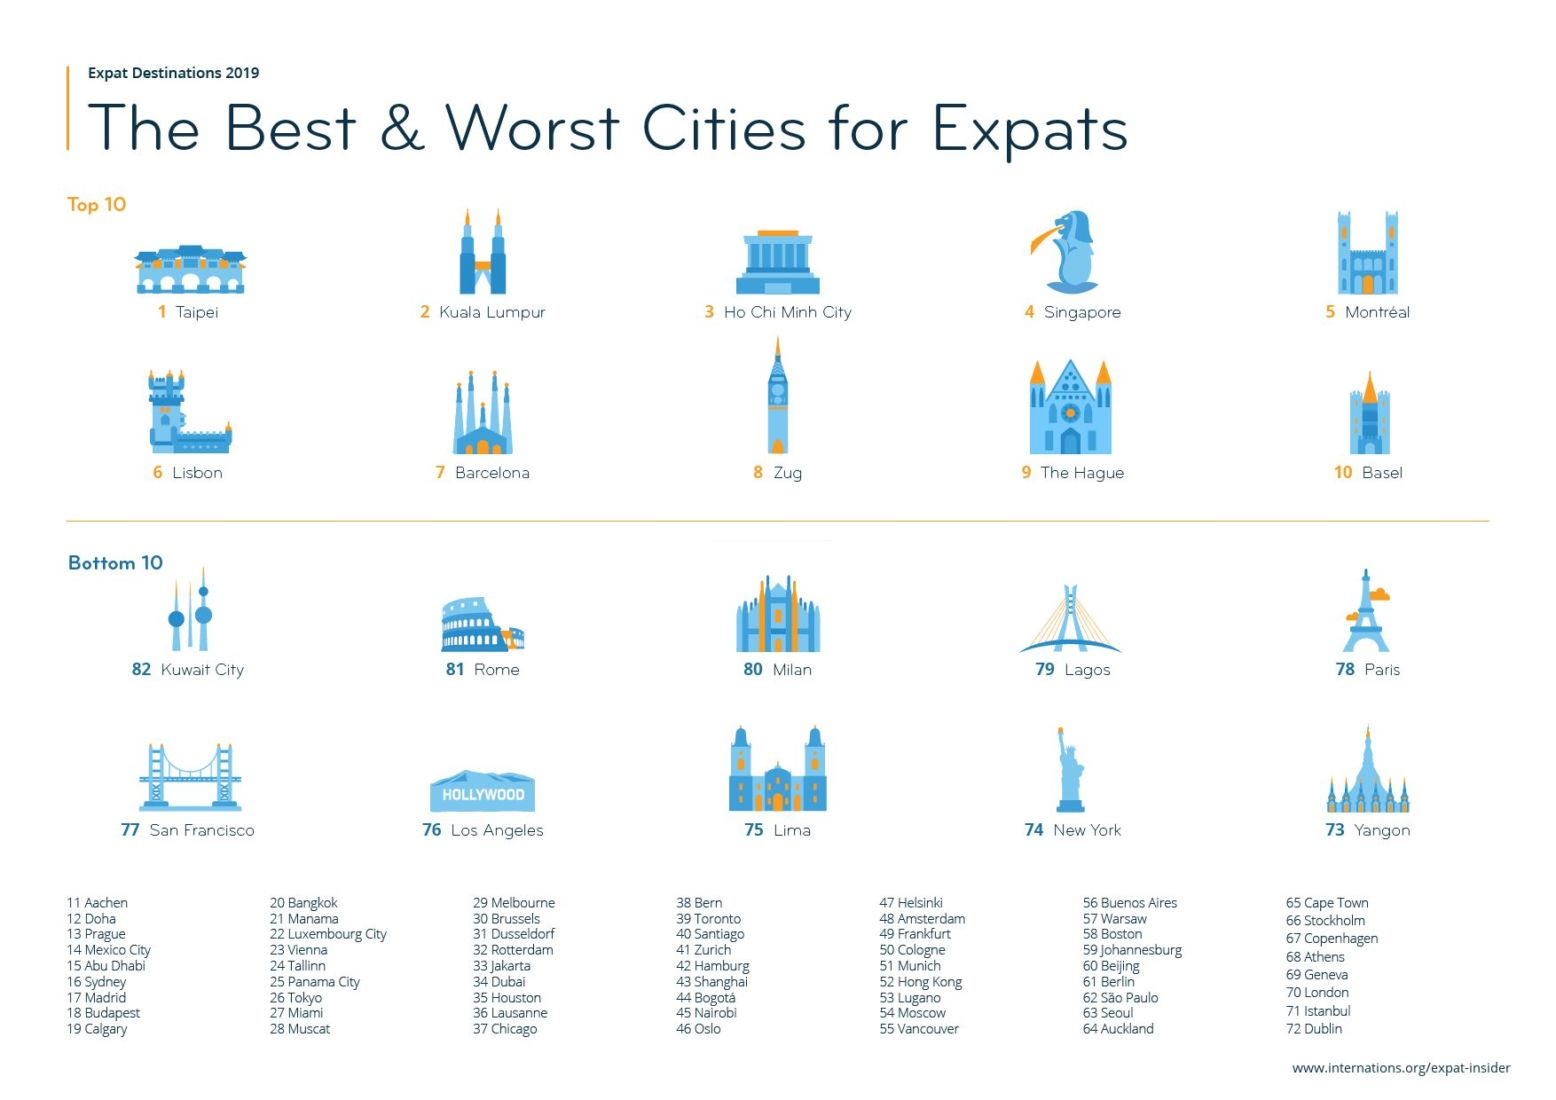 Bangkok less popular, Taipei heads the list - World's favourite city for expats | News by Thaiger